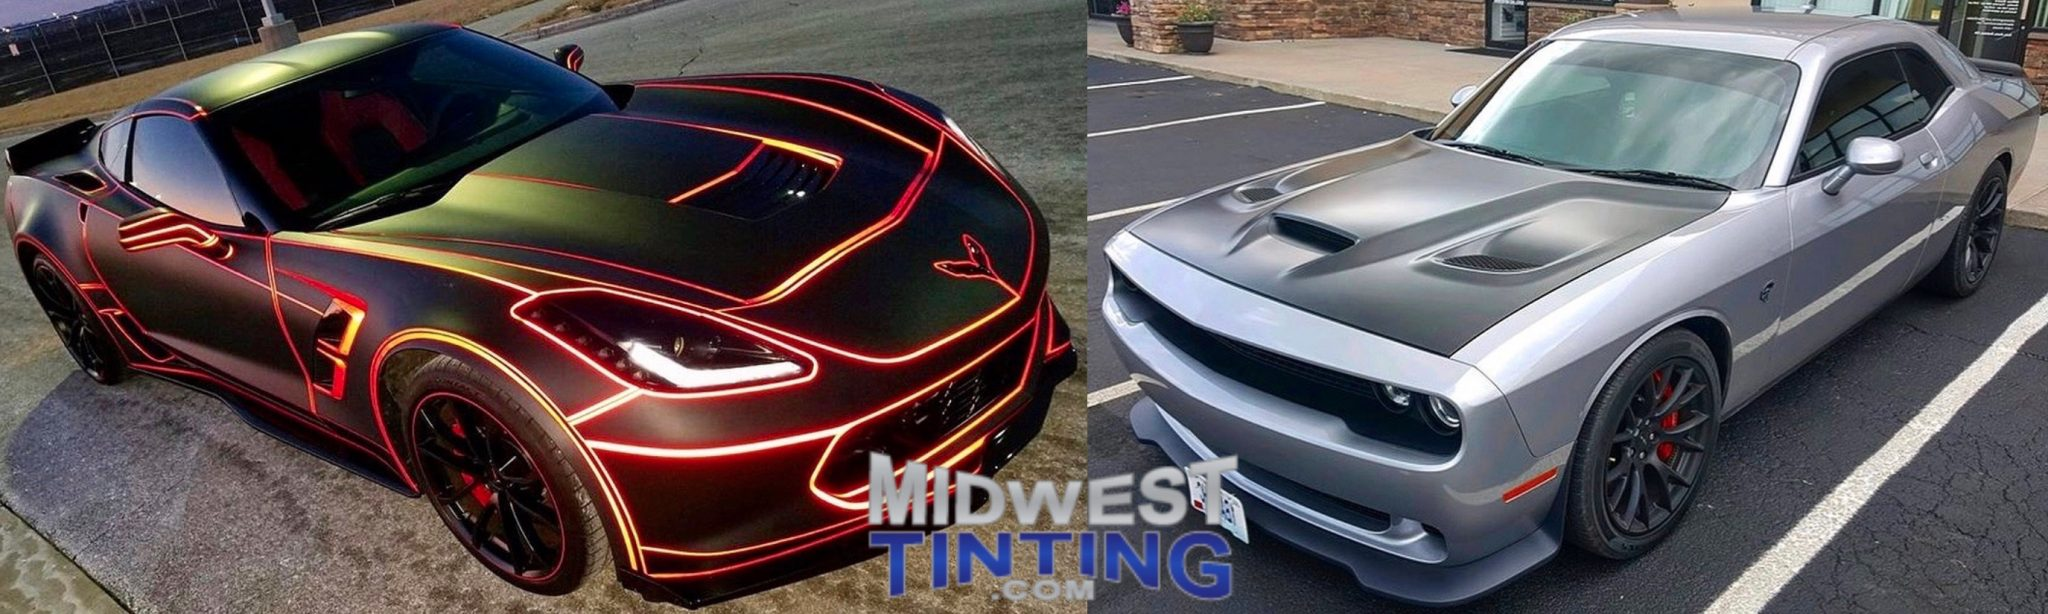 Midwest Tinting - Spring Into Something New - Kansas City- Spring Into Something New With Vehicle Customization at Midwest Tinting